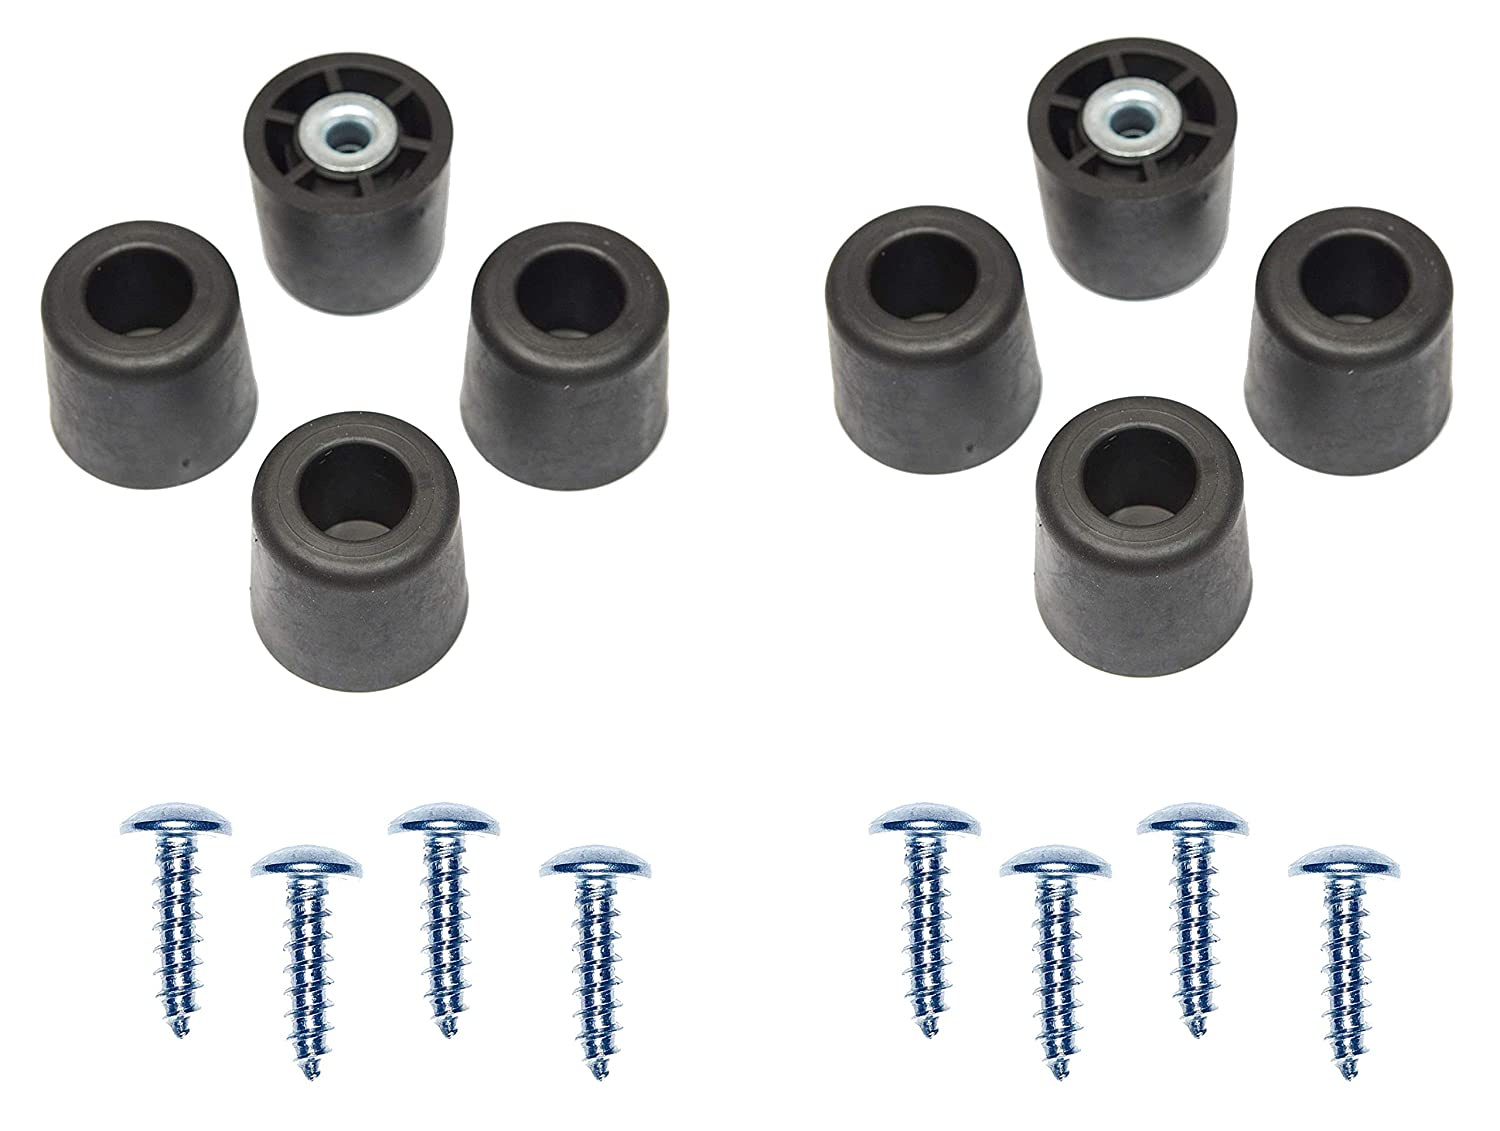 """8 Large Extra Tall #2 w/Screws - 1"""" H X 1.10"""" W Round Rubber FEET Bumpers - Made in USA Made in USA - Heavy Duty Non Marking for Furniture, Tables, Chairs, Desks, Benches."""